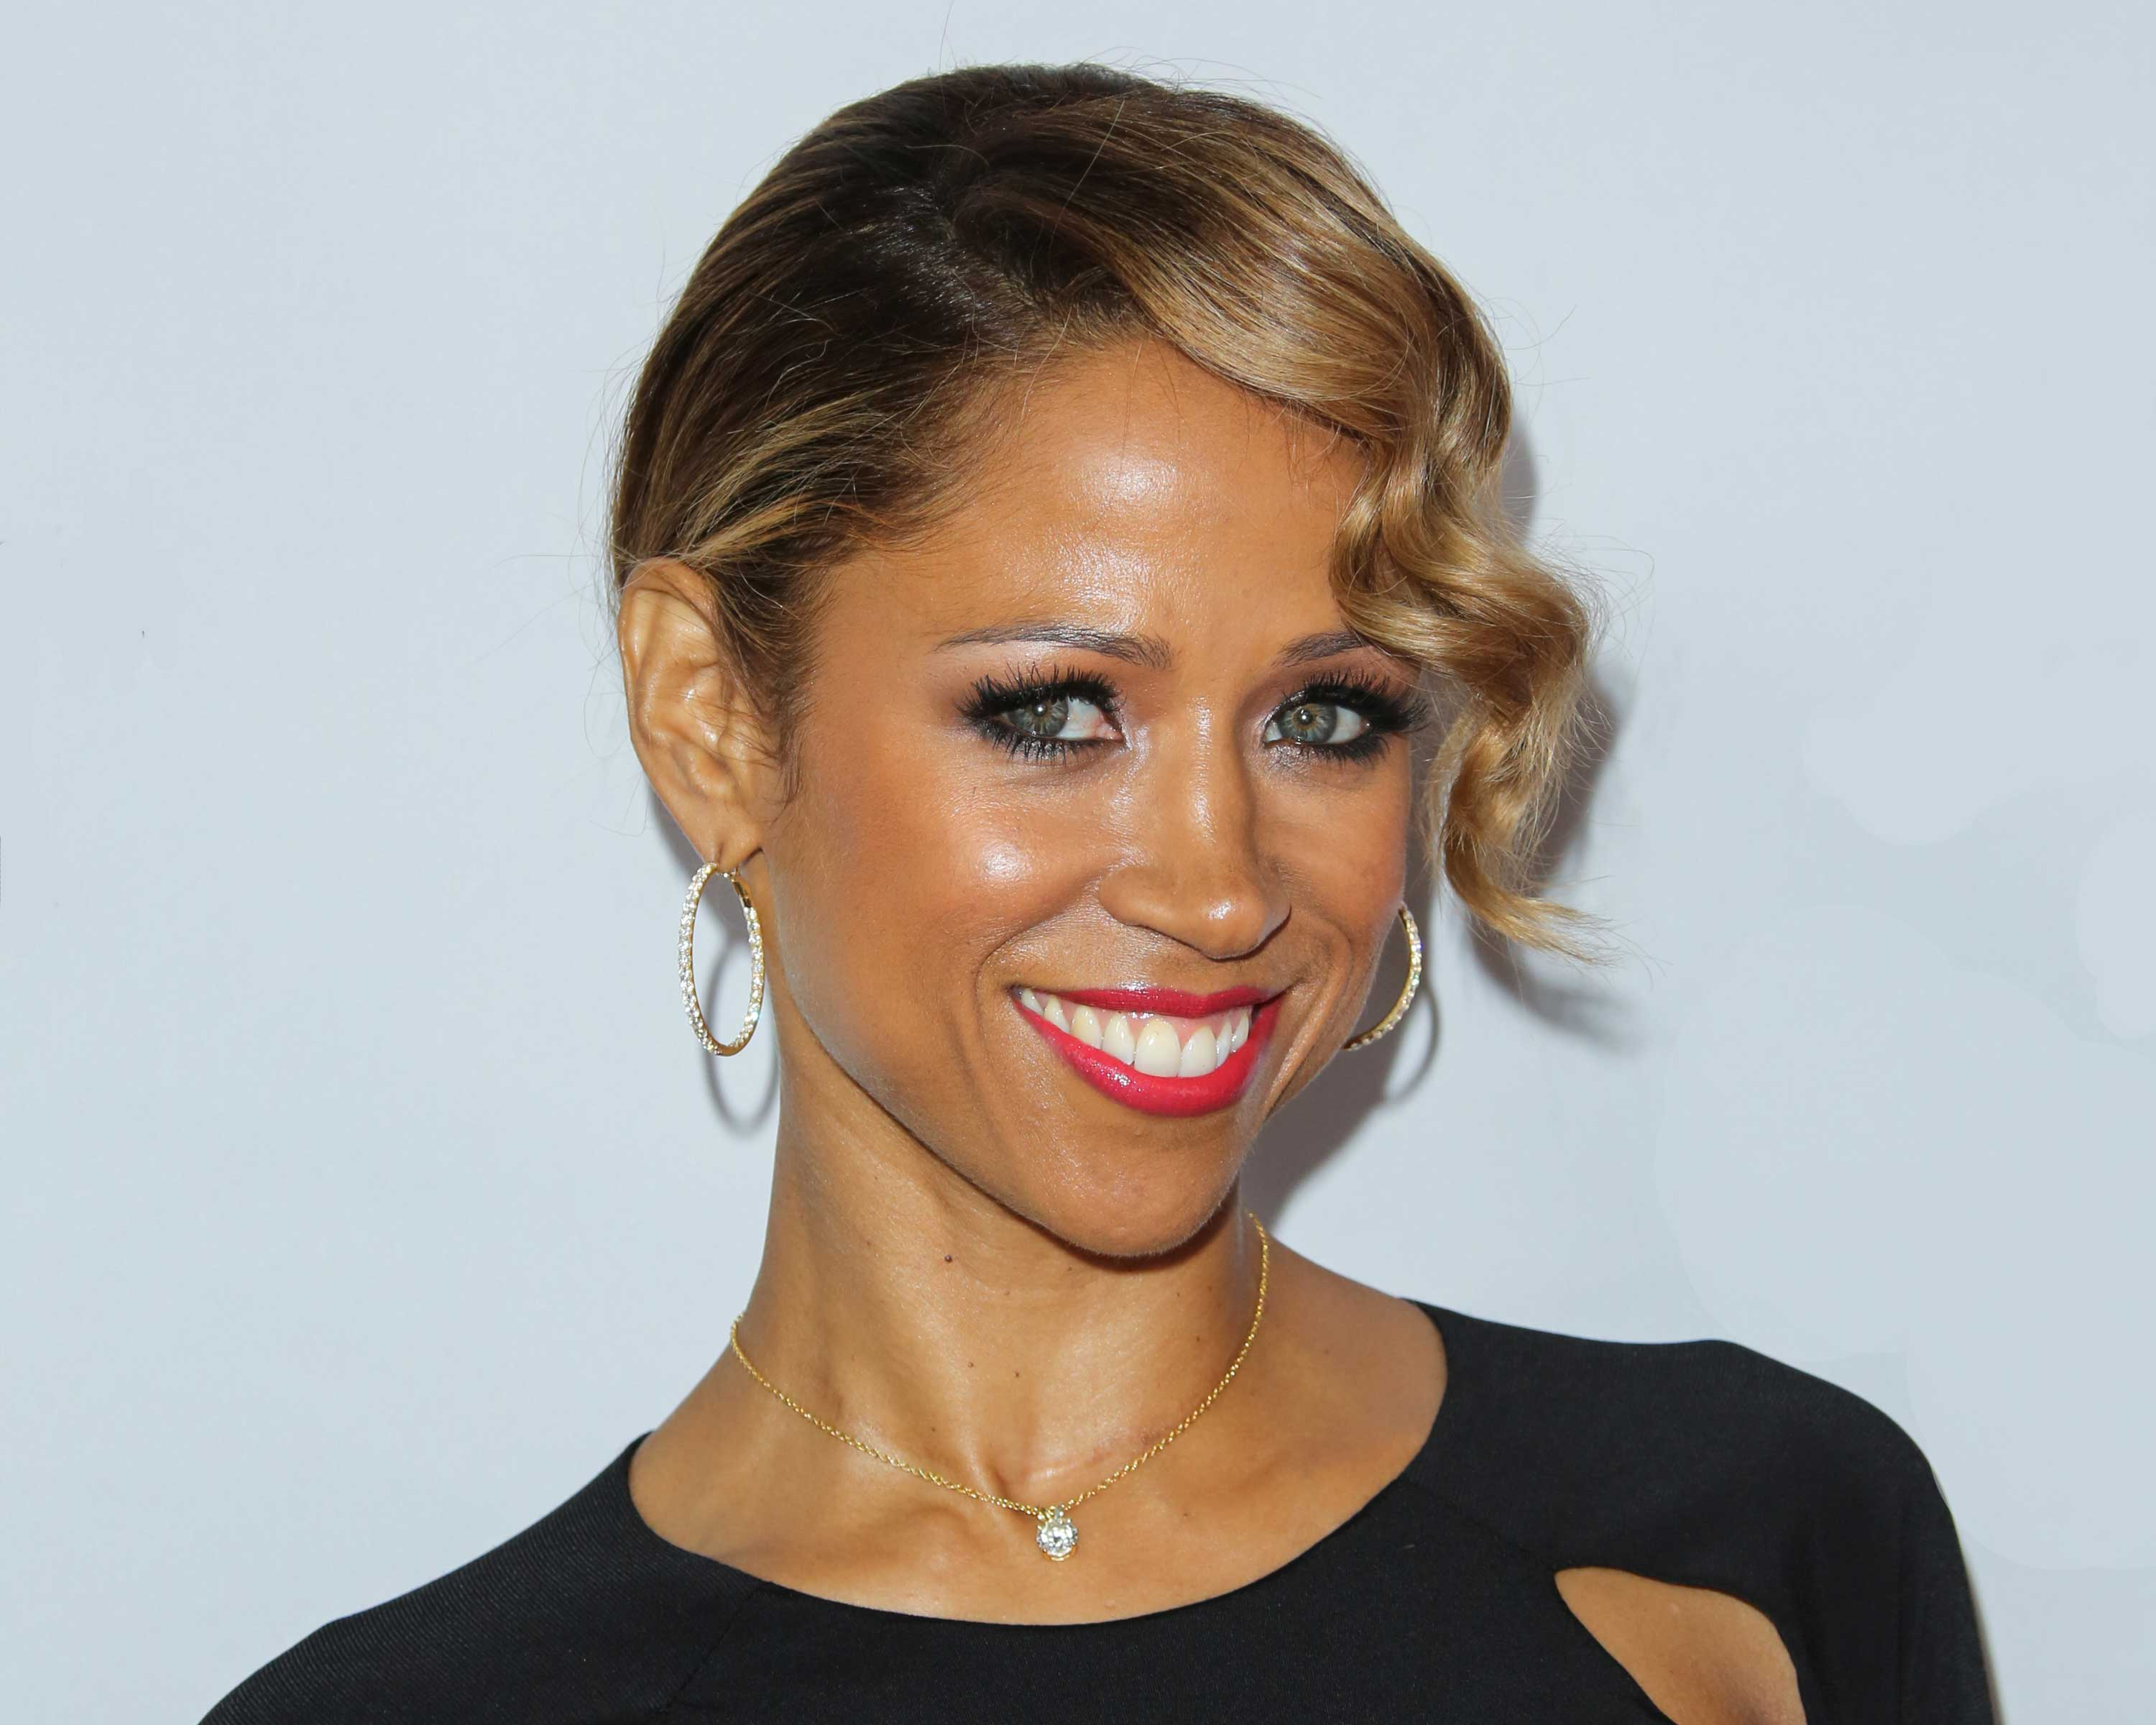 Controversial Actress Stacy Dash is Running for Office in California